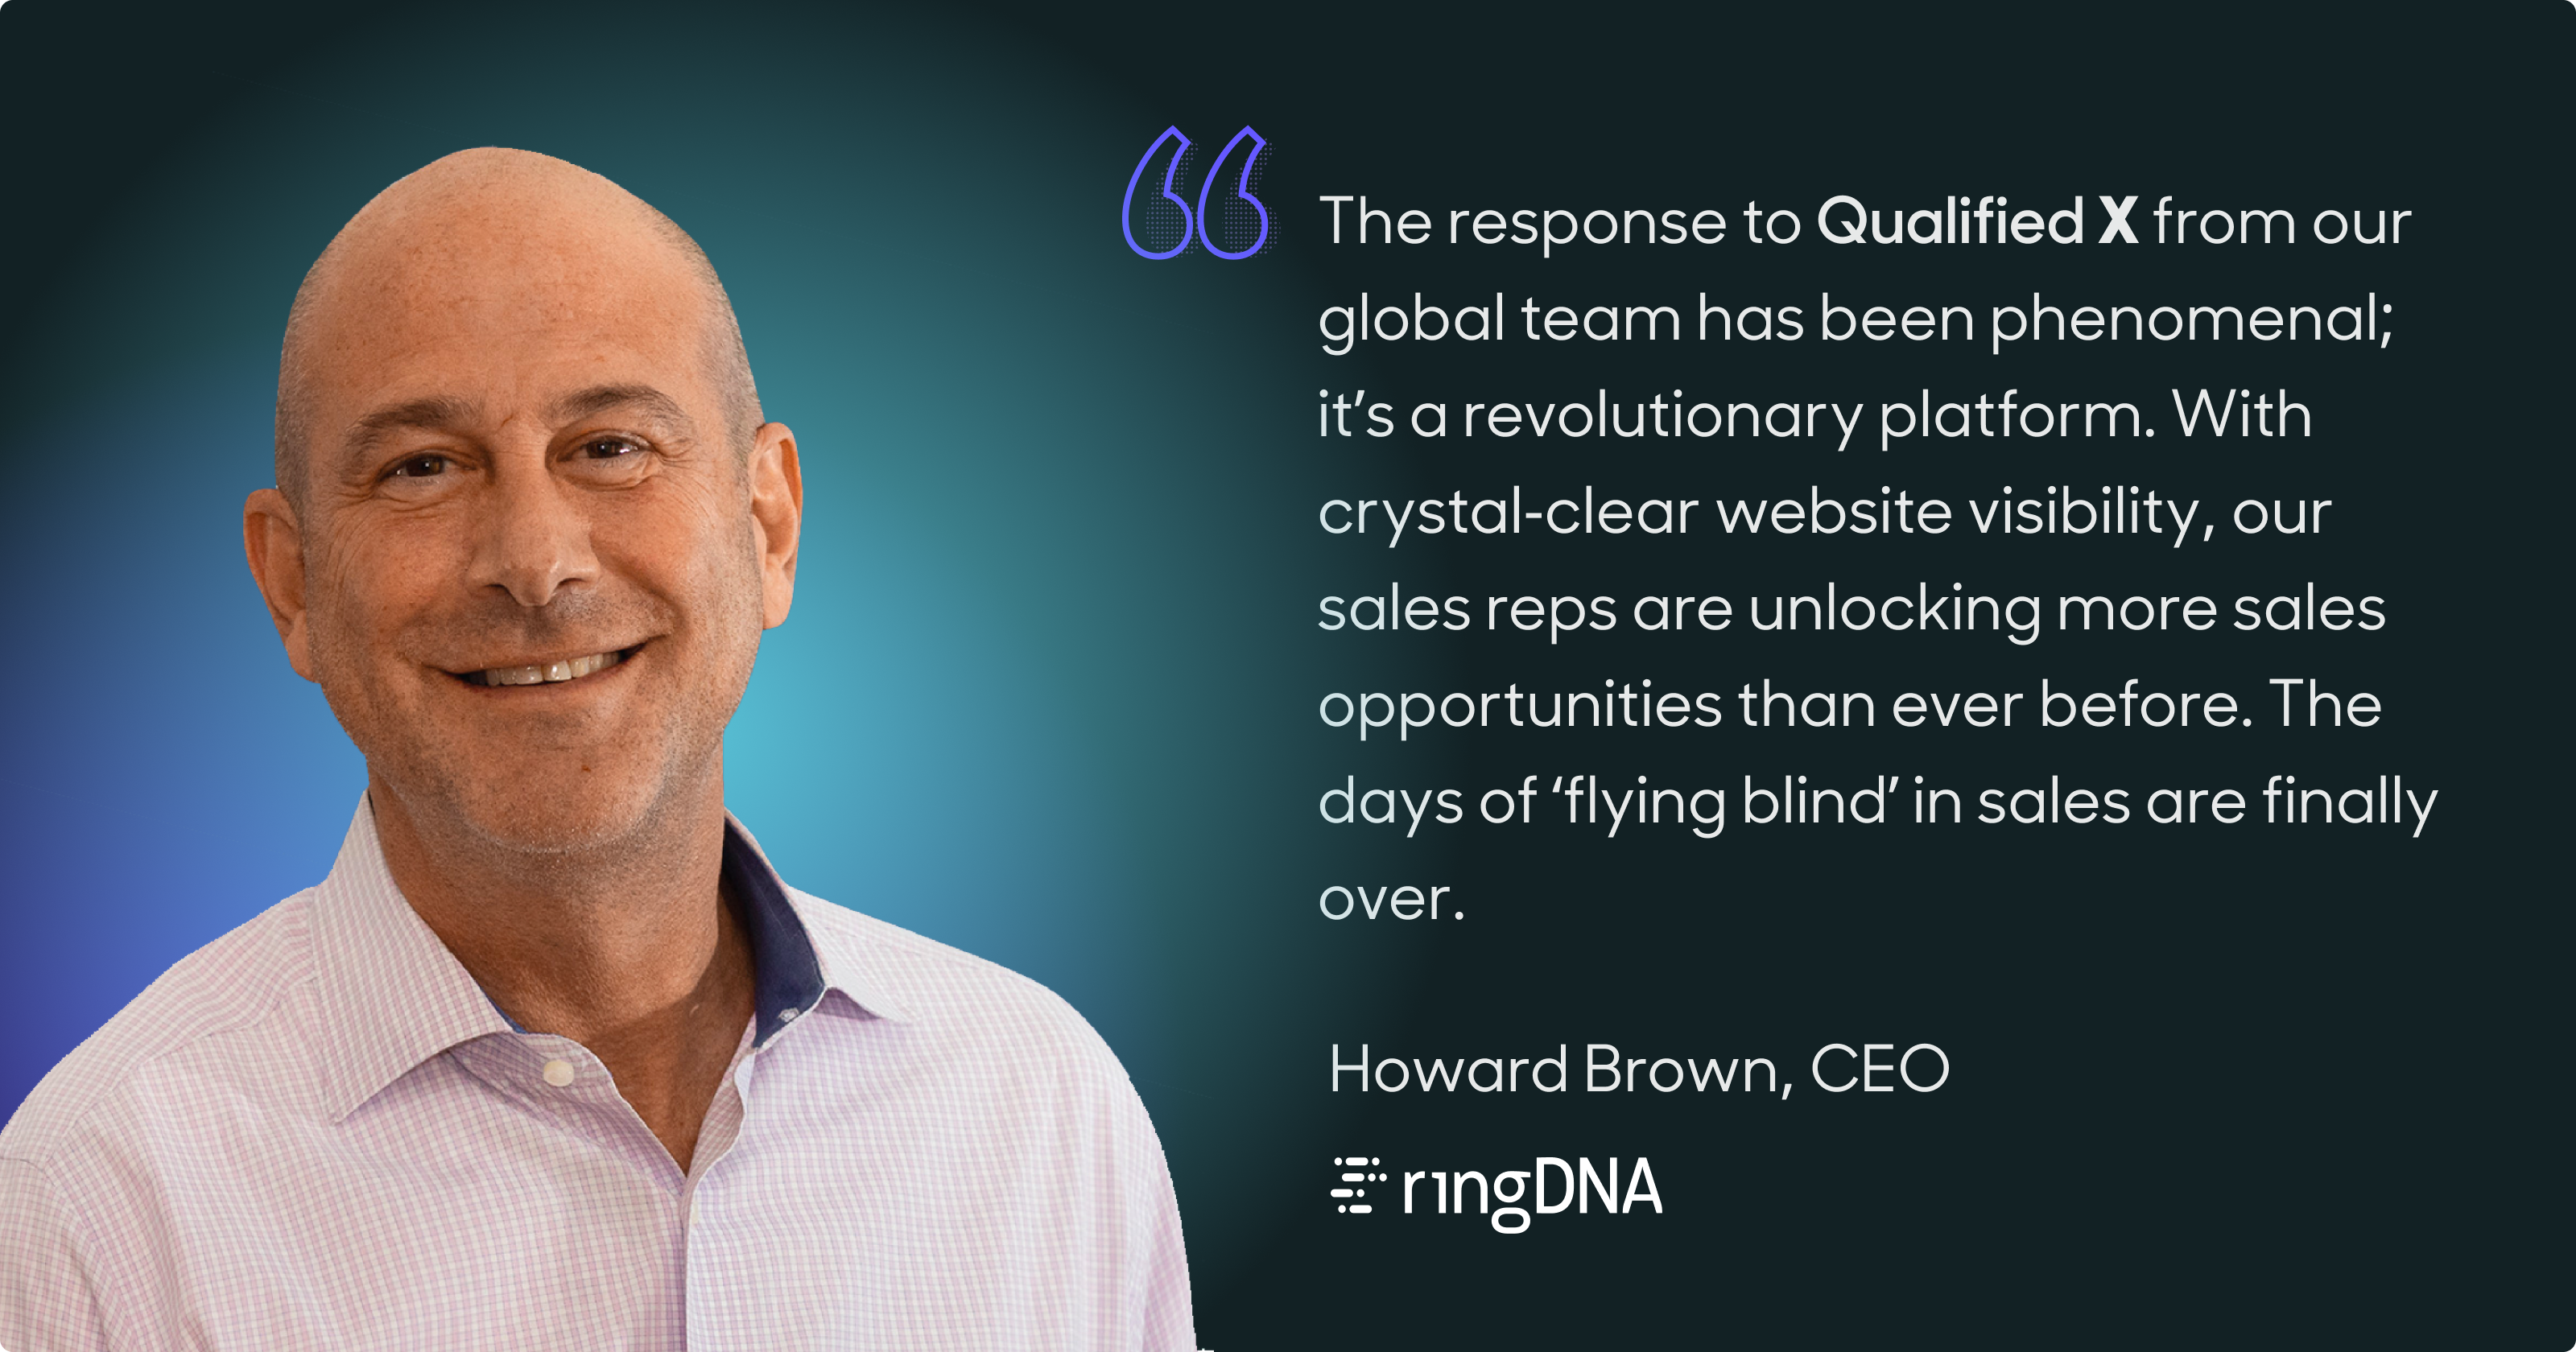 Howard Brown, CEO at ringDNA, has rolled out Qualified X to their global sales team.